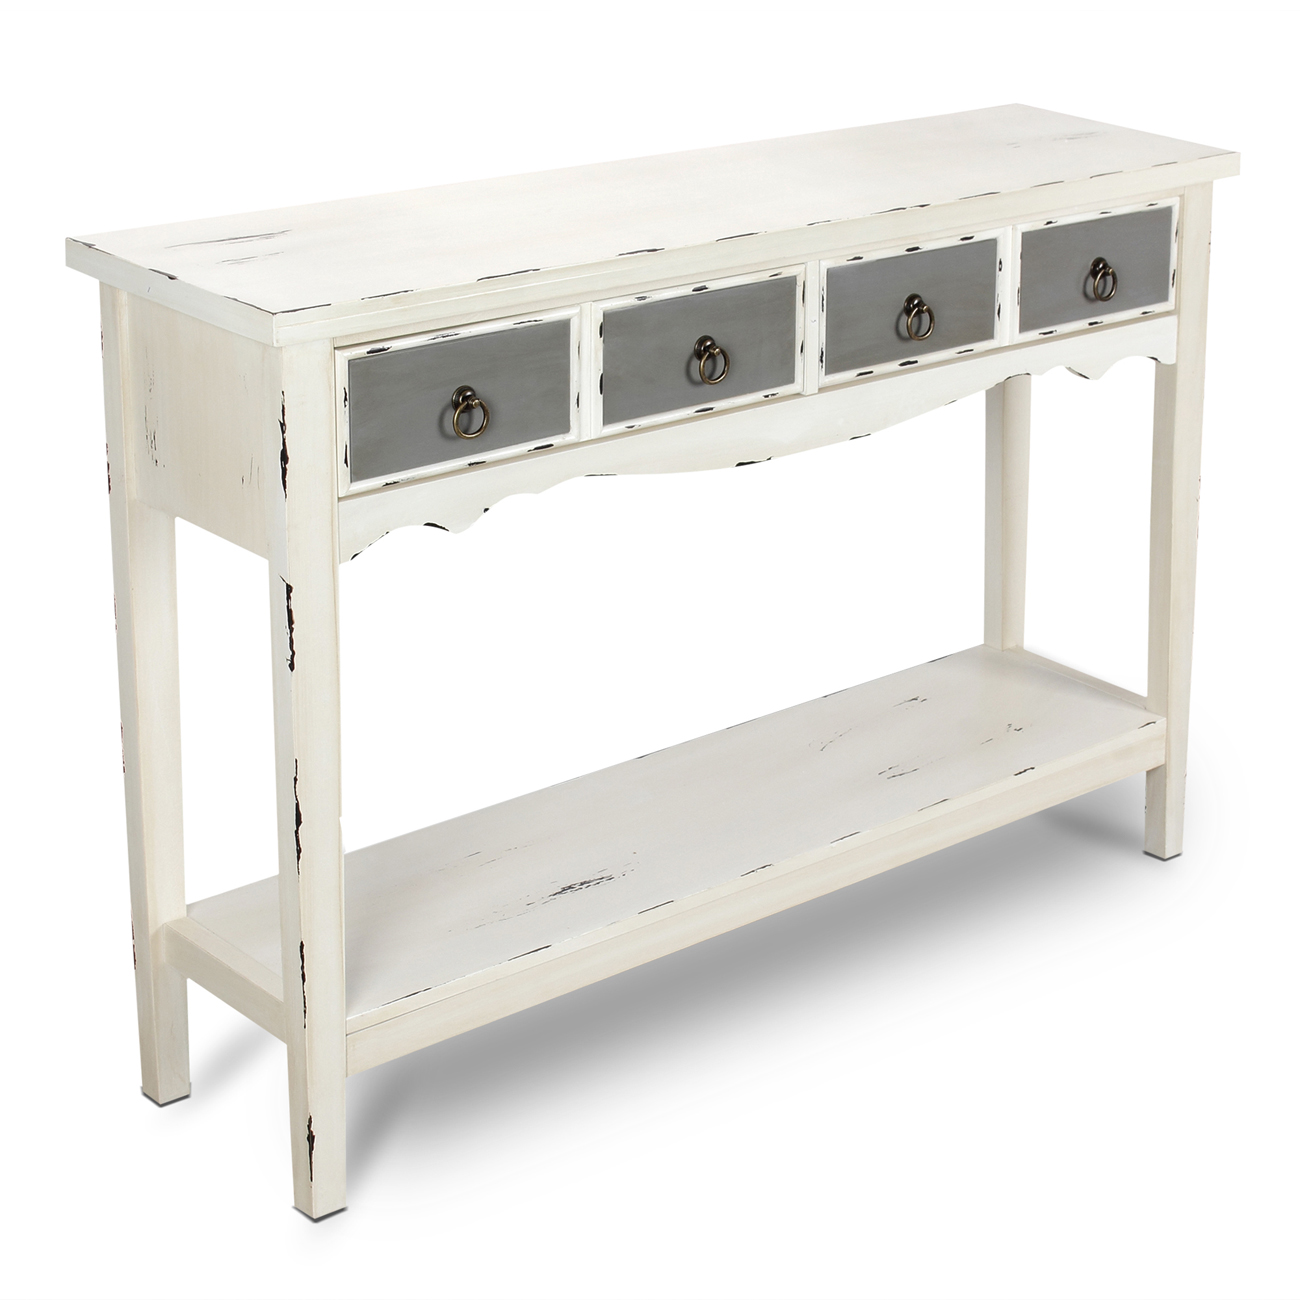 modern two tone drawer distressed console entryway table hafley accent target antique white silver and marble side cube coffee plastic patio lack desk farmhouse extension dining